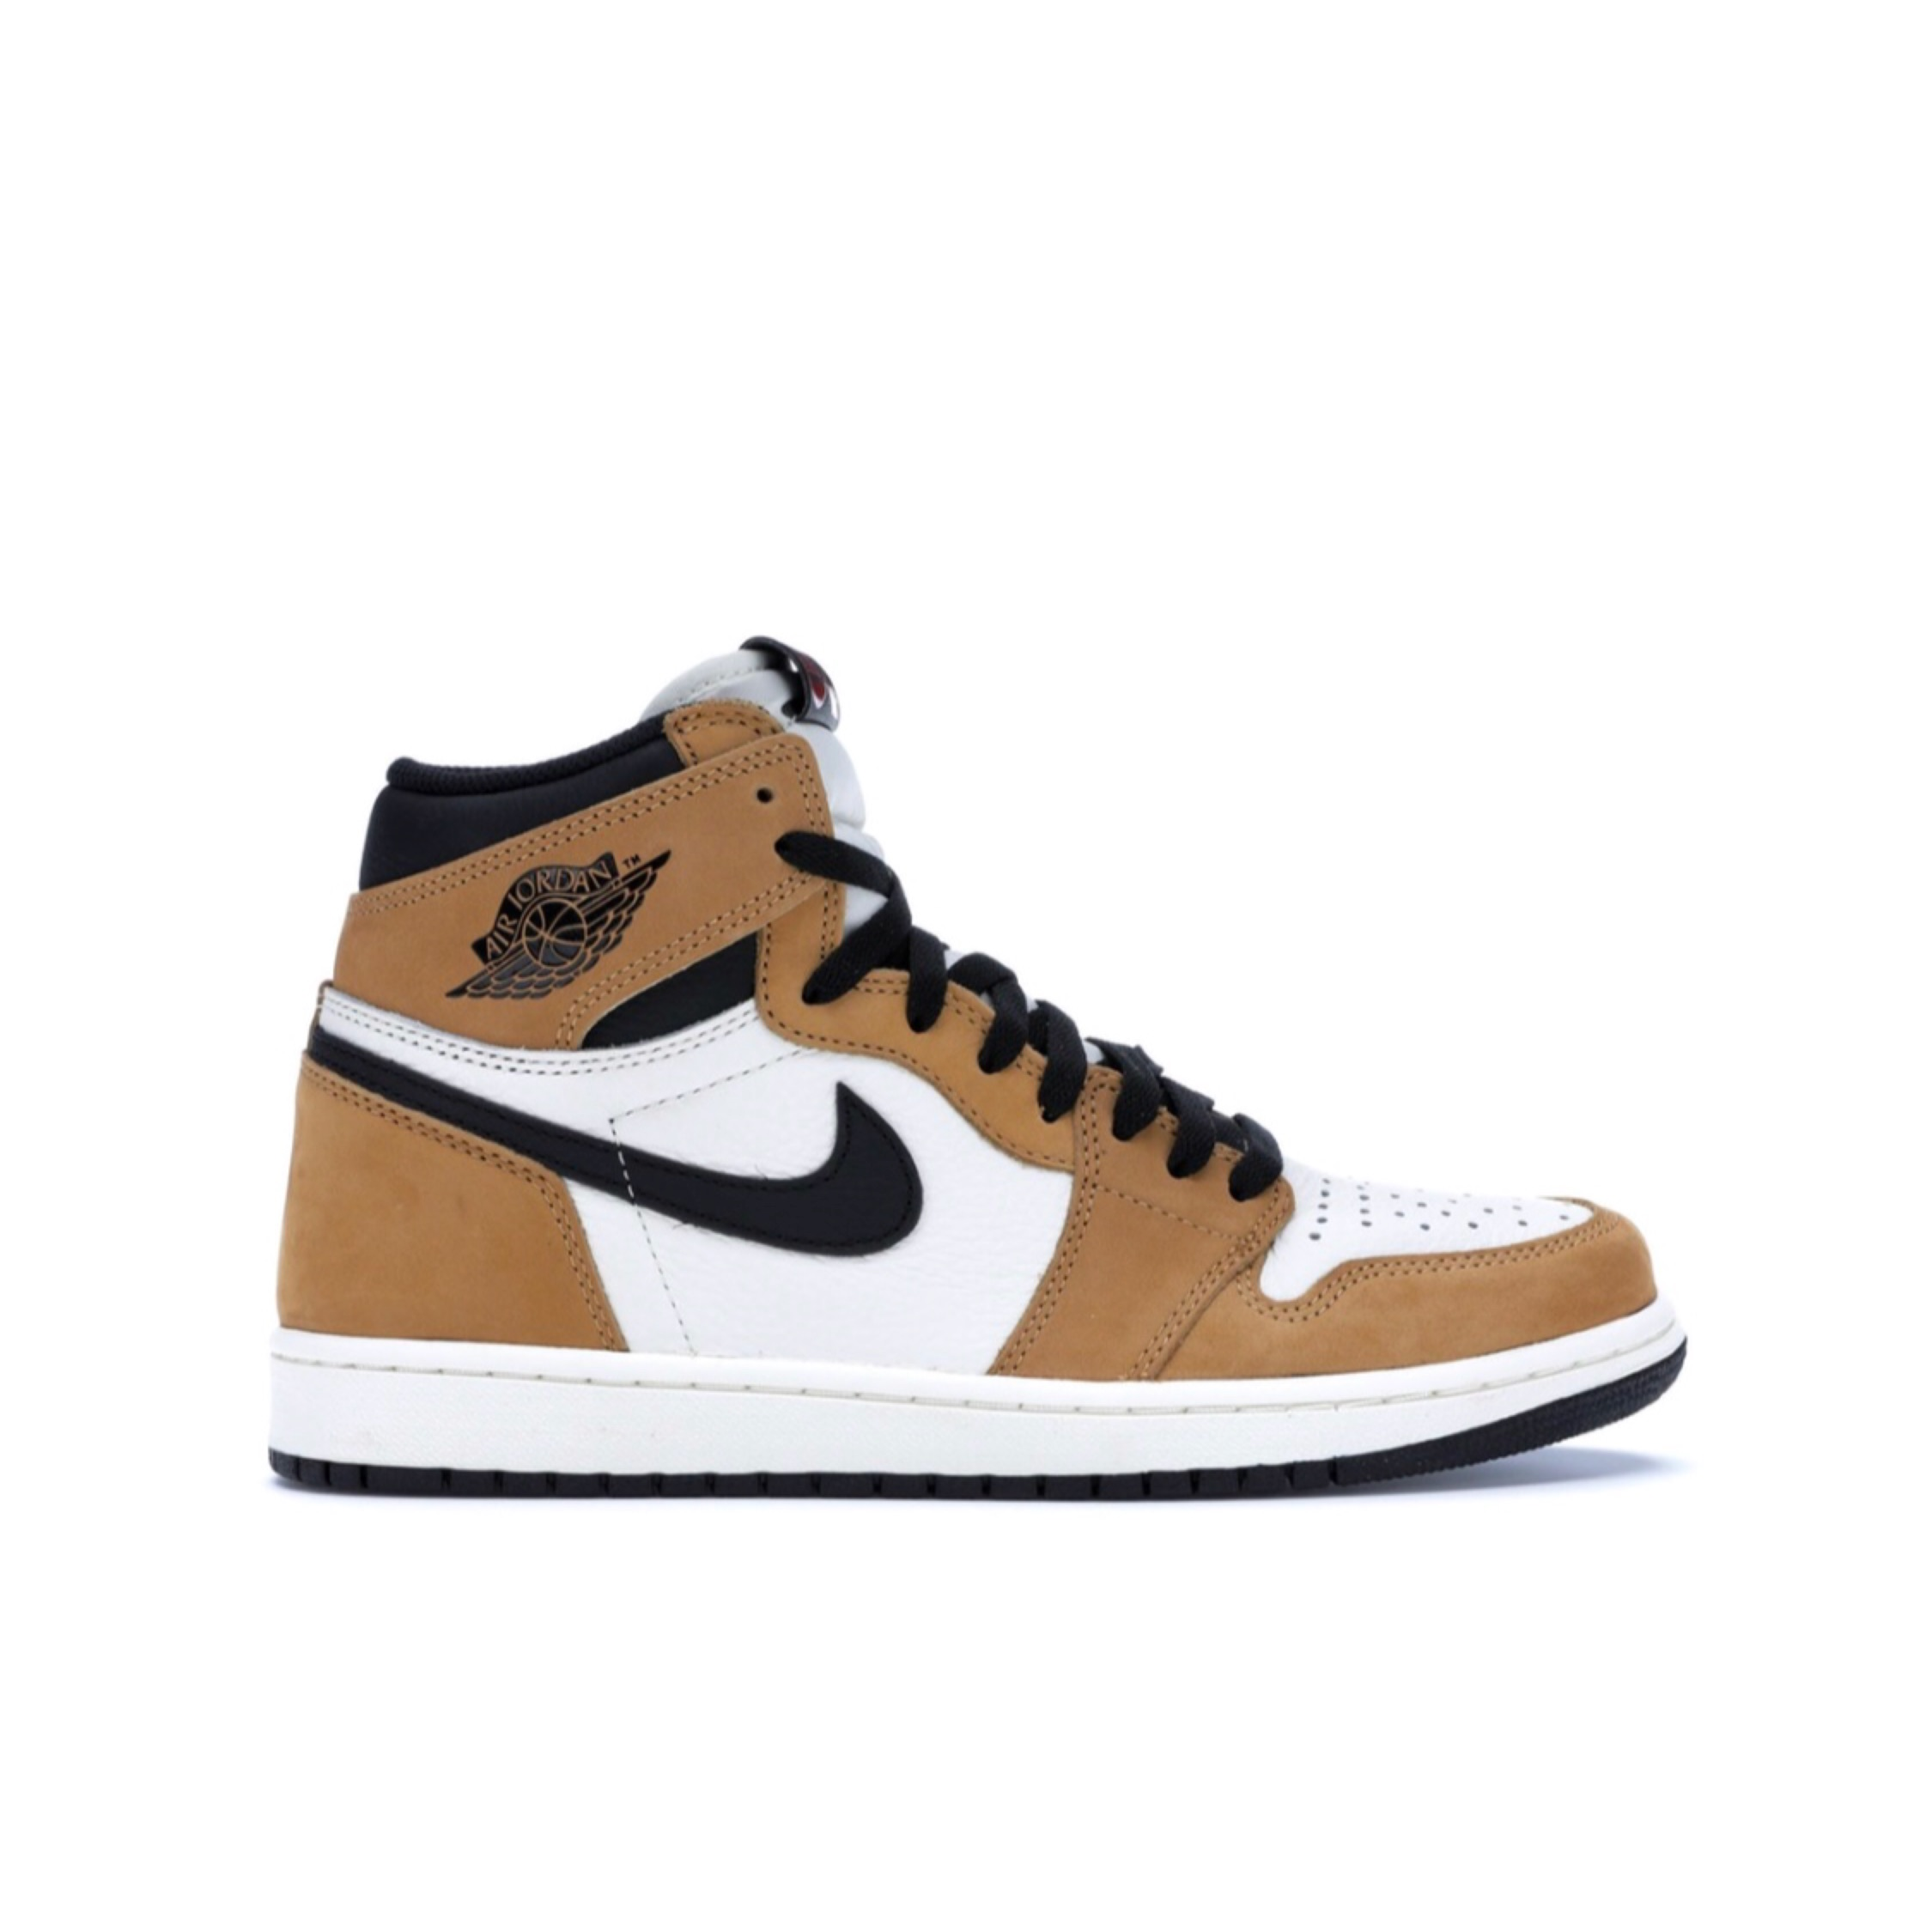 Nike Air Jordan 1 Rookie Of The Year Eu 39